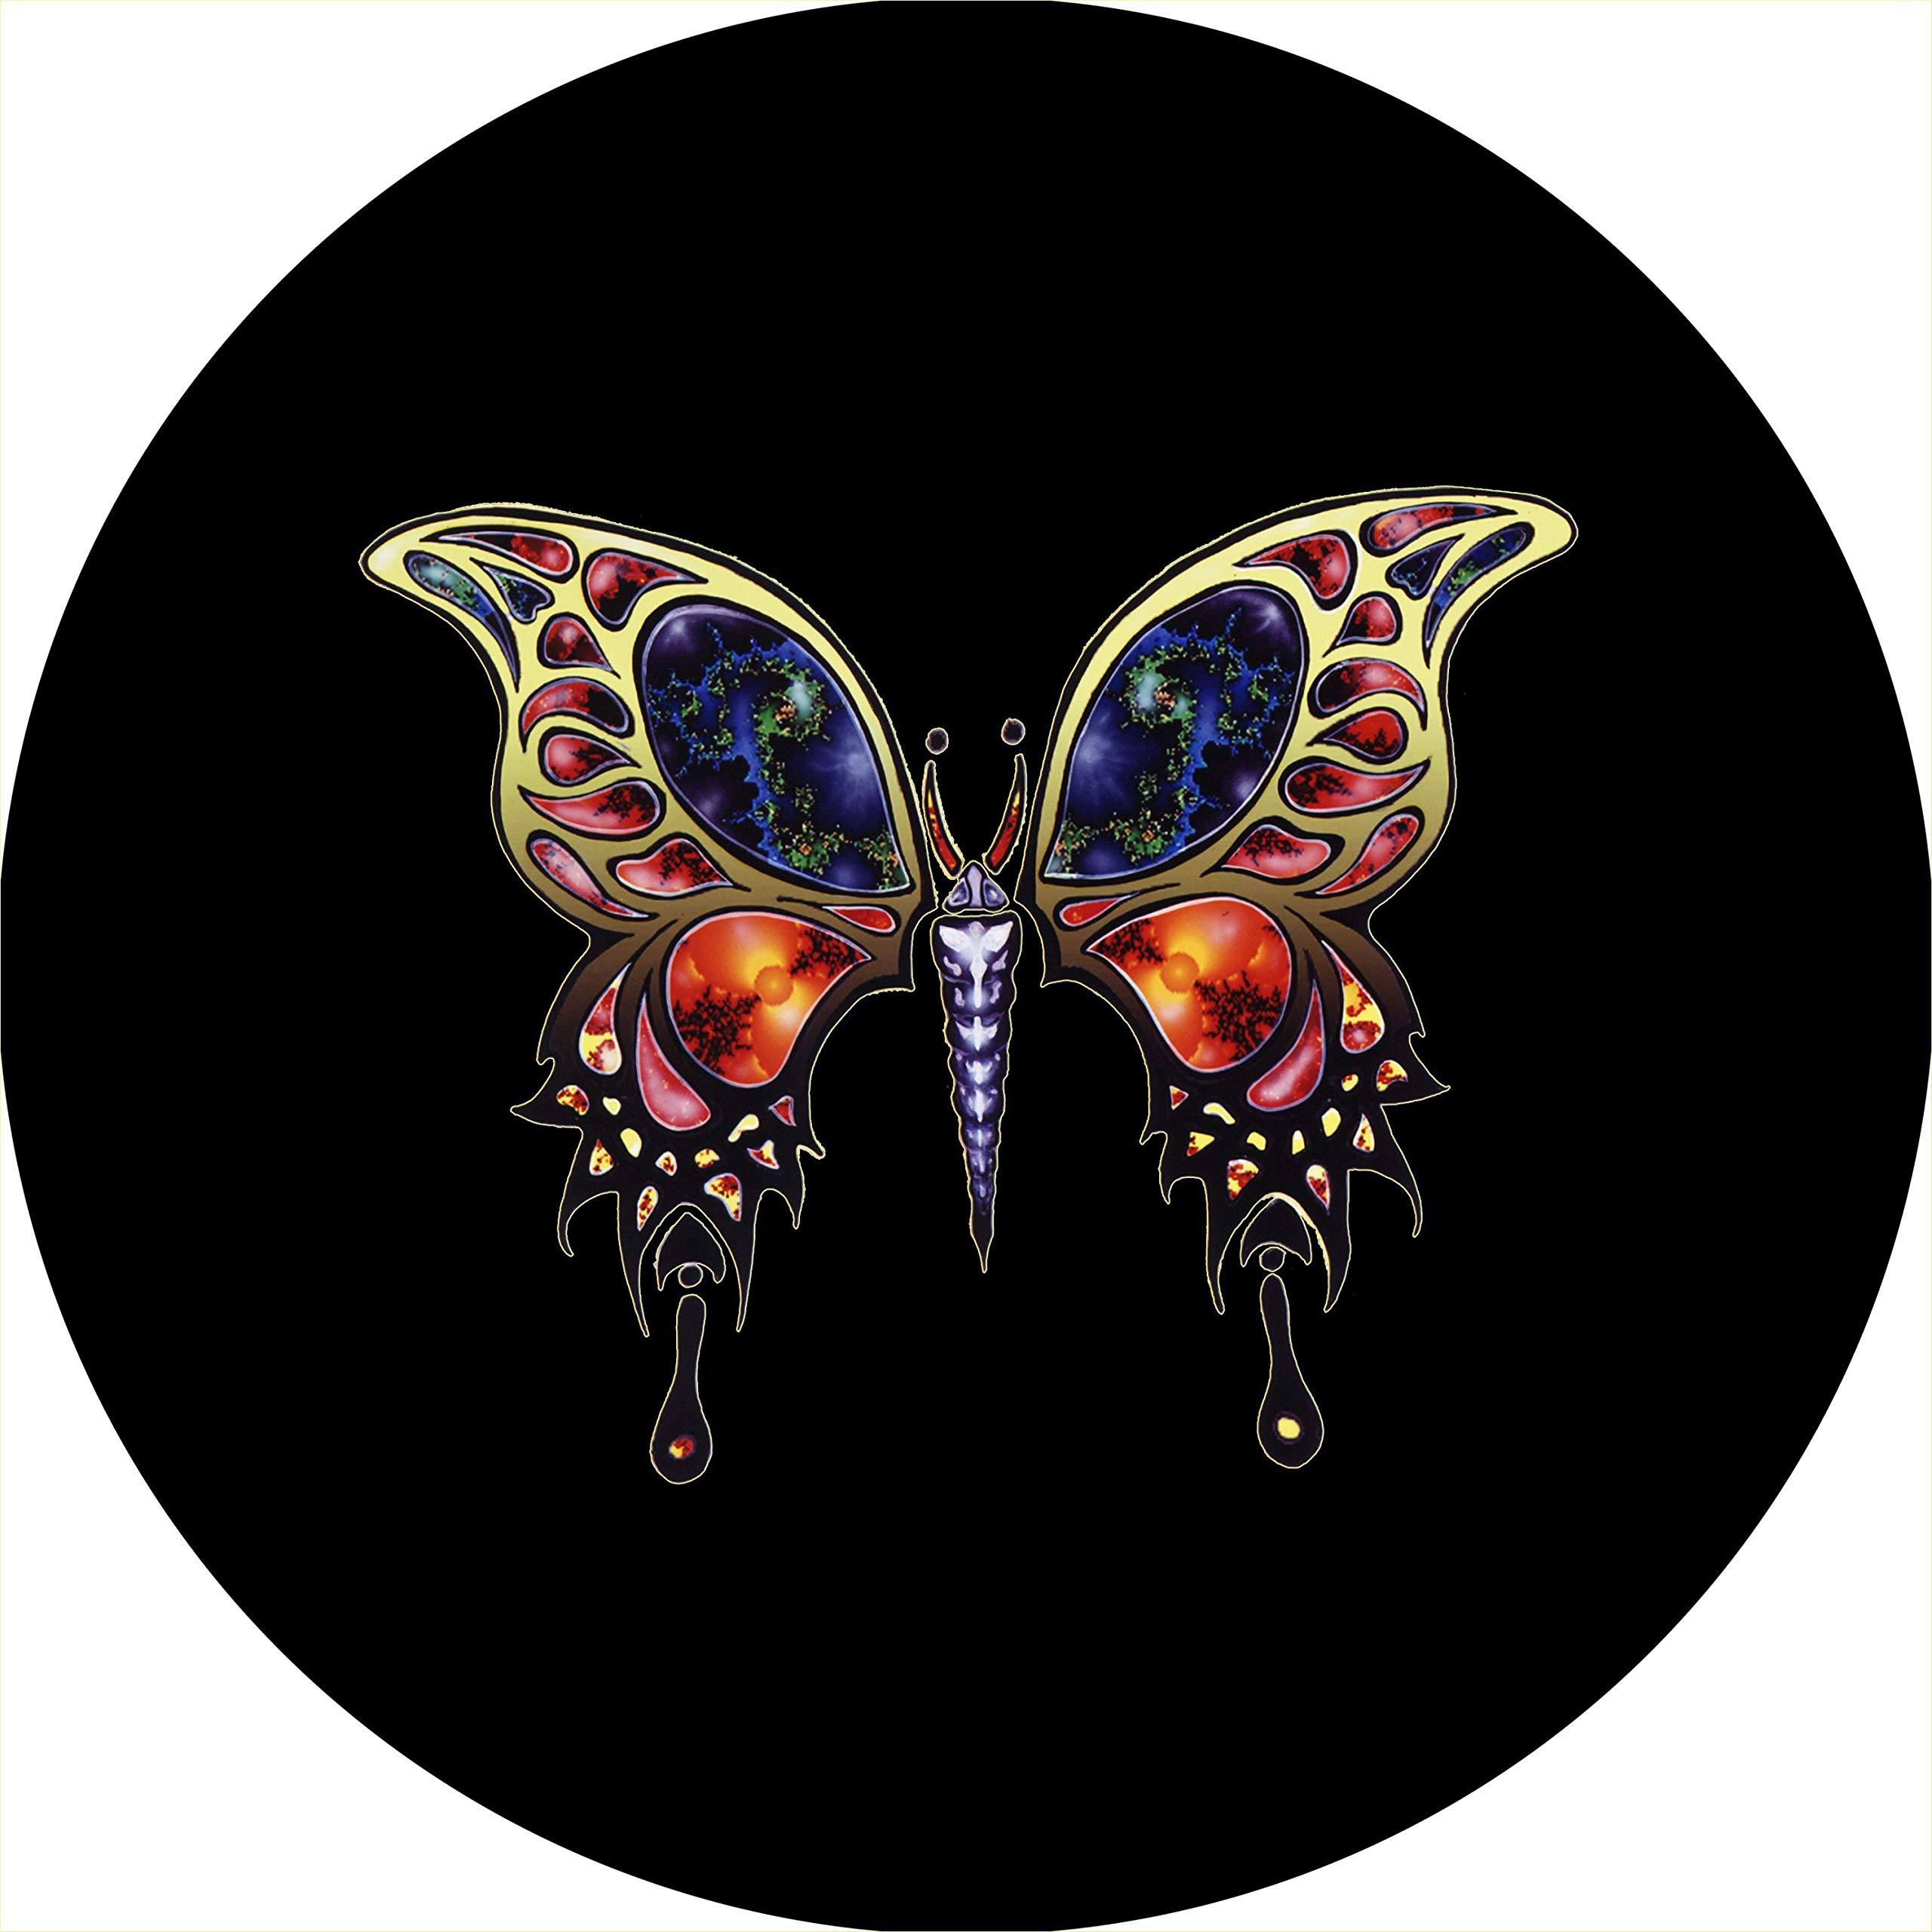 TIRE COVER CENTRAL Fractal Butterfly Spare Tire Cover (Select tire Size/Back up Camera in MENU) Custom Sized to Any Make/Model 255/75R17 Dubois(c)